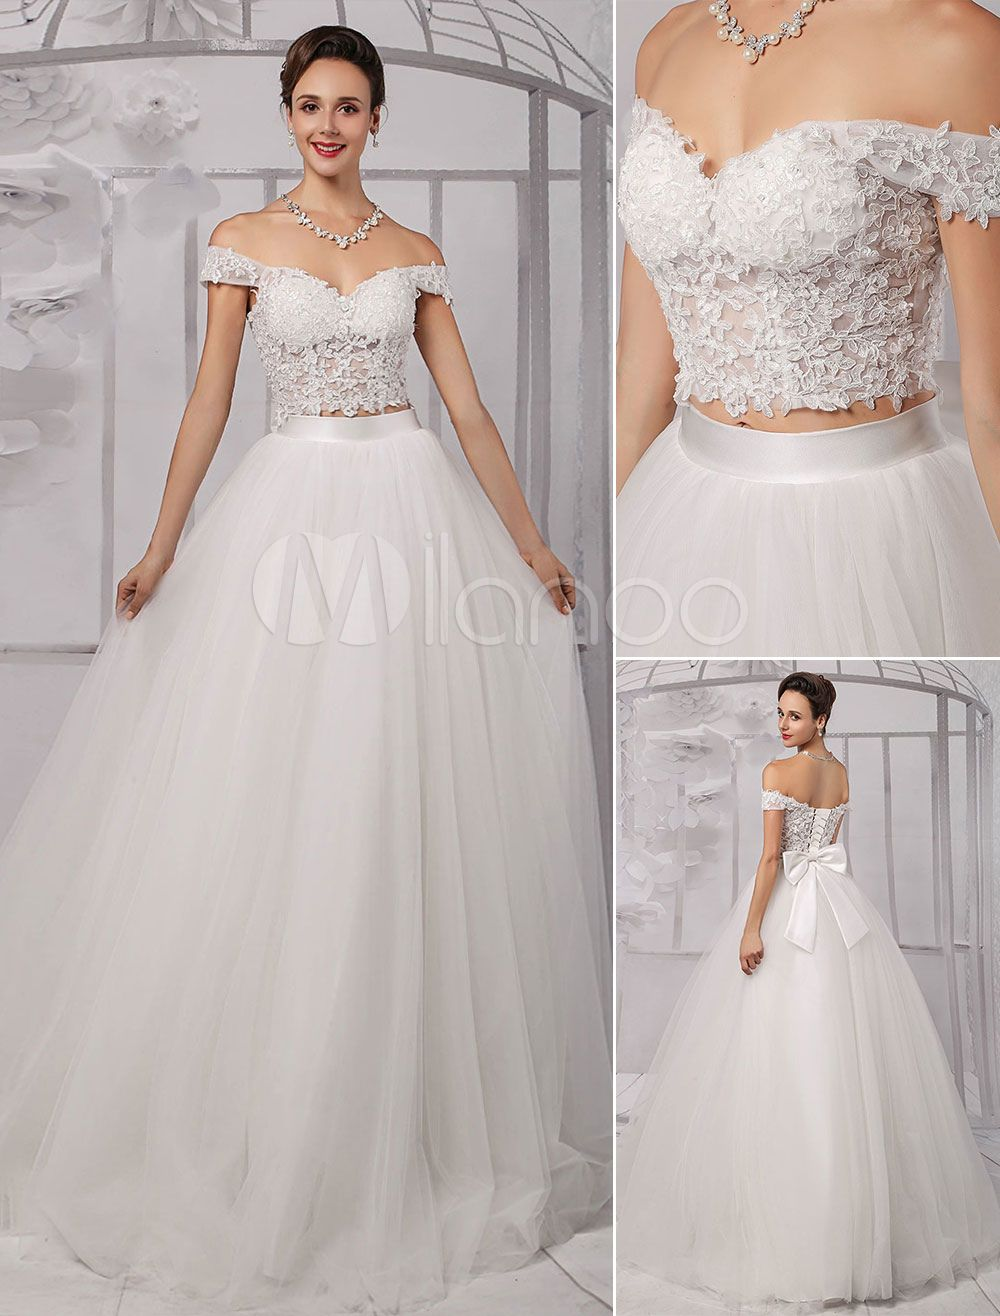 crop top wedding dress Two Pieces Crop Top Off the shoulder Ball Gown Wedding Dress With Tulle